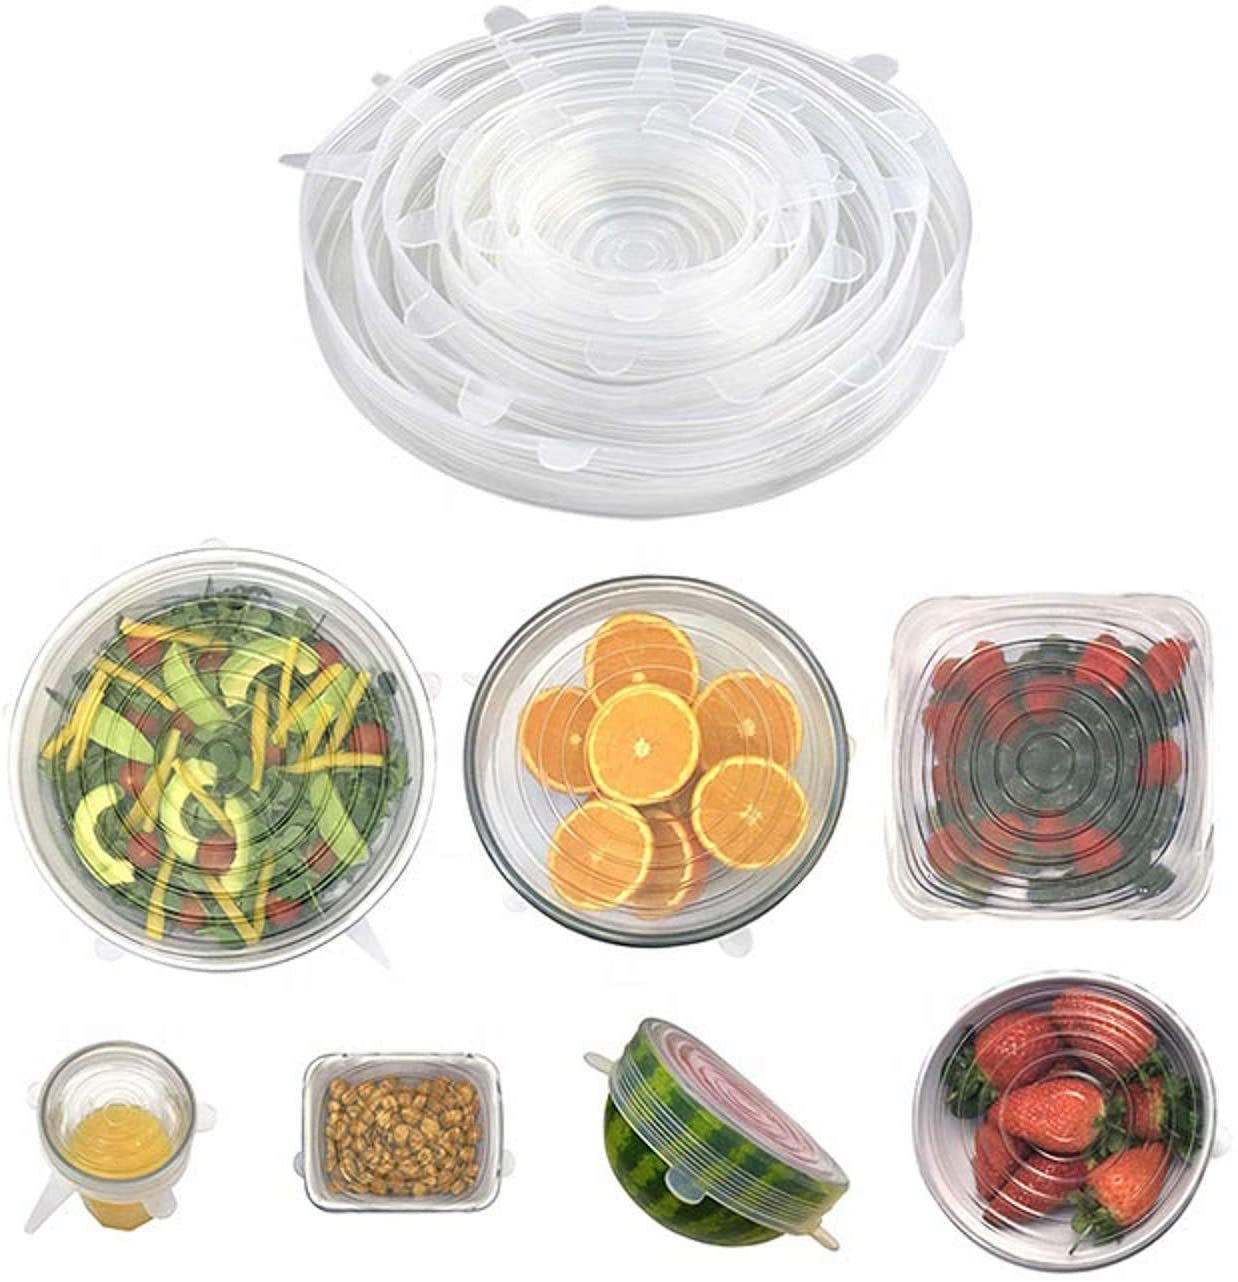 buy silicone stretch lids 7 pack with exclusive xl size bowl container covers dishwasher microwave freezer oven safe reusable recyclable online